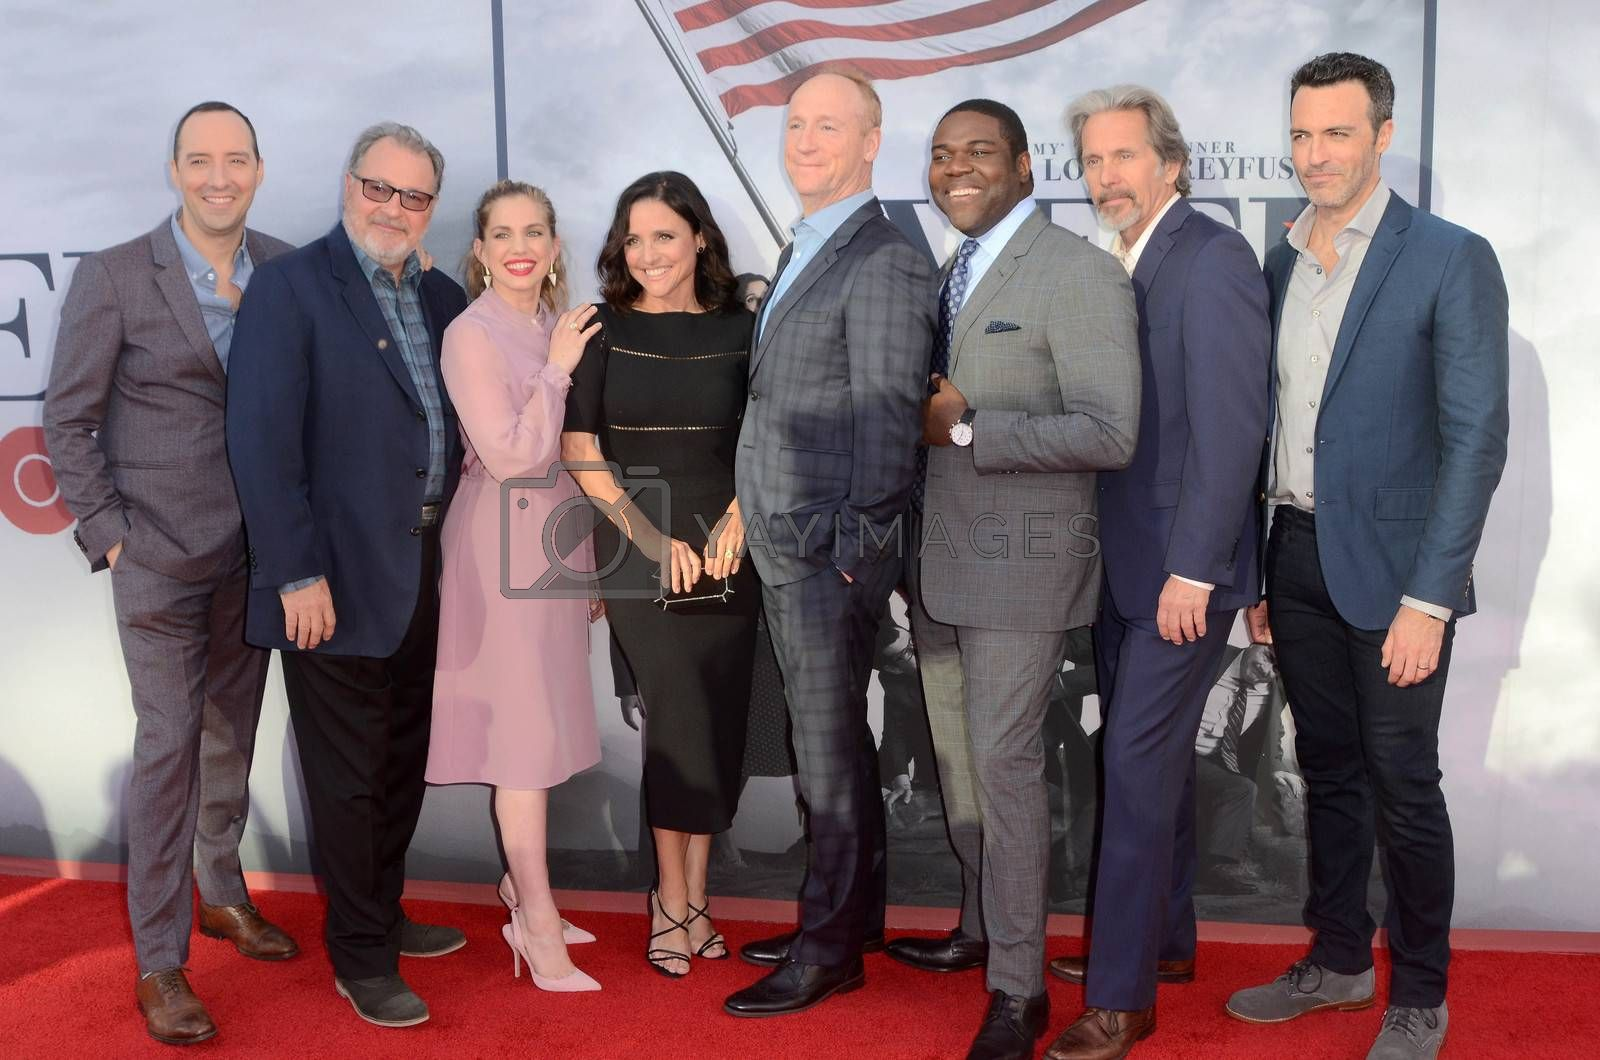 Tony Hale, Kevin Dunn, Anna Chlumsky, Julia Louis-Dreyfus, Matt Walsh, Sam Richardson, Gary Cole, Reid Scott at FYC for HBO's series VEEP 6th Season, Television Academy, North Hollywood, CA 05-25-17/ImageCollect by ImageCollect